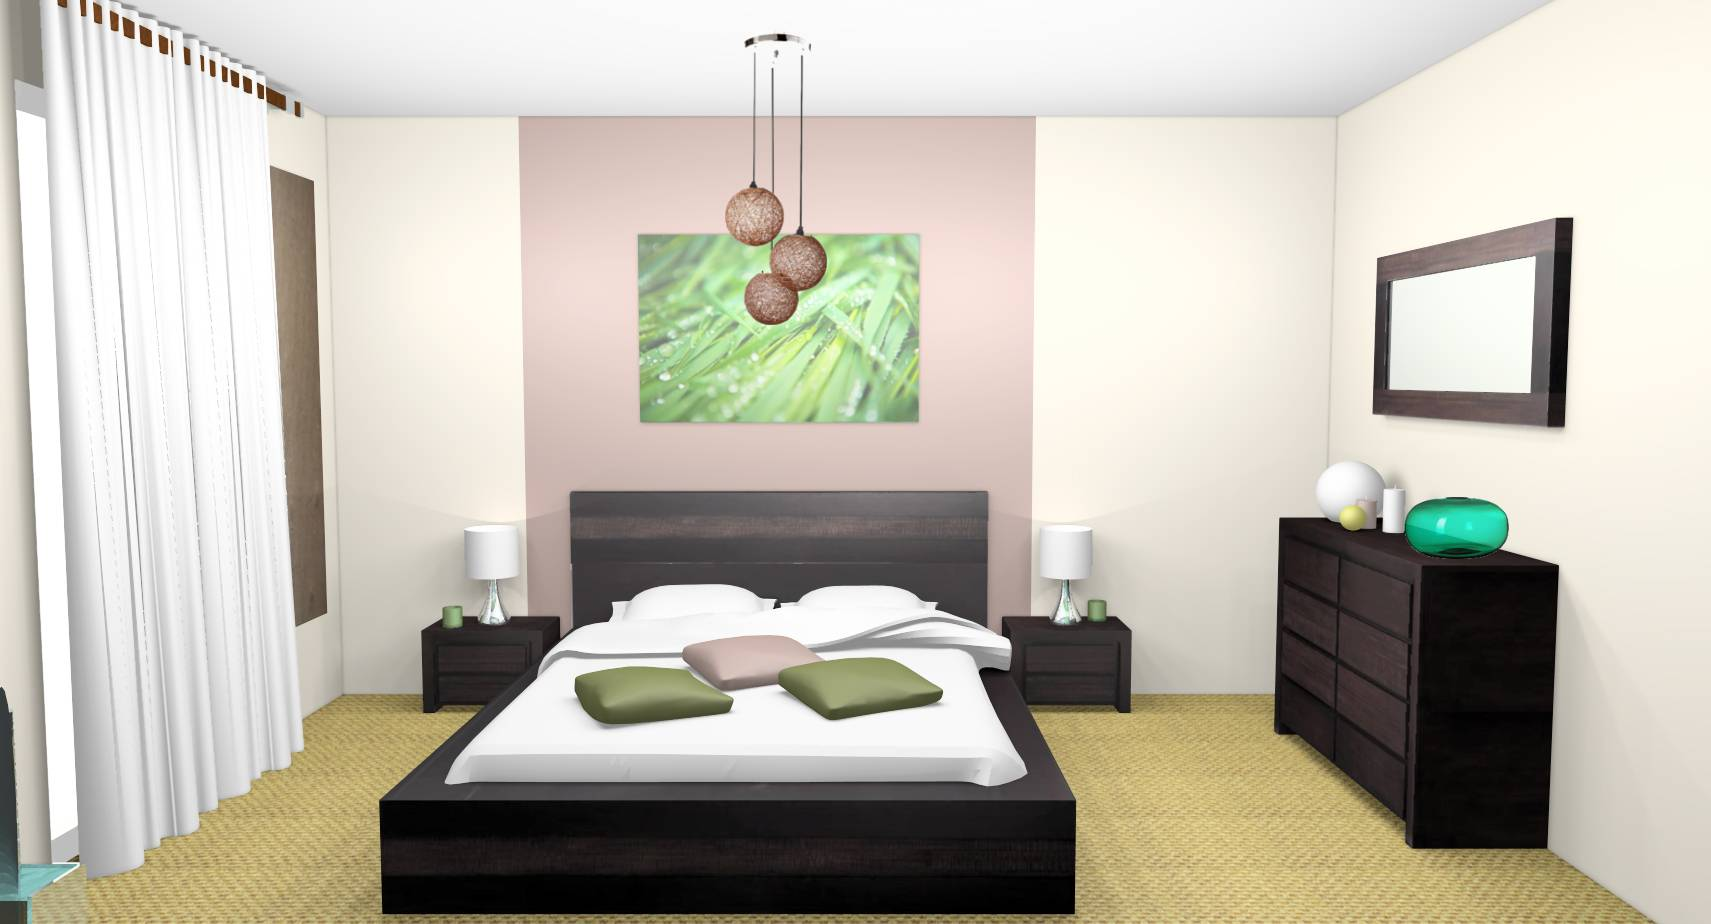 D co chambre zen adulte for Decoration chambre adulte